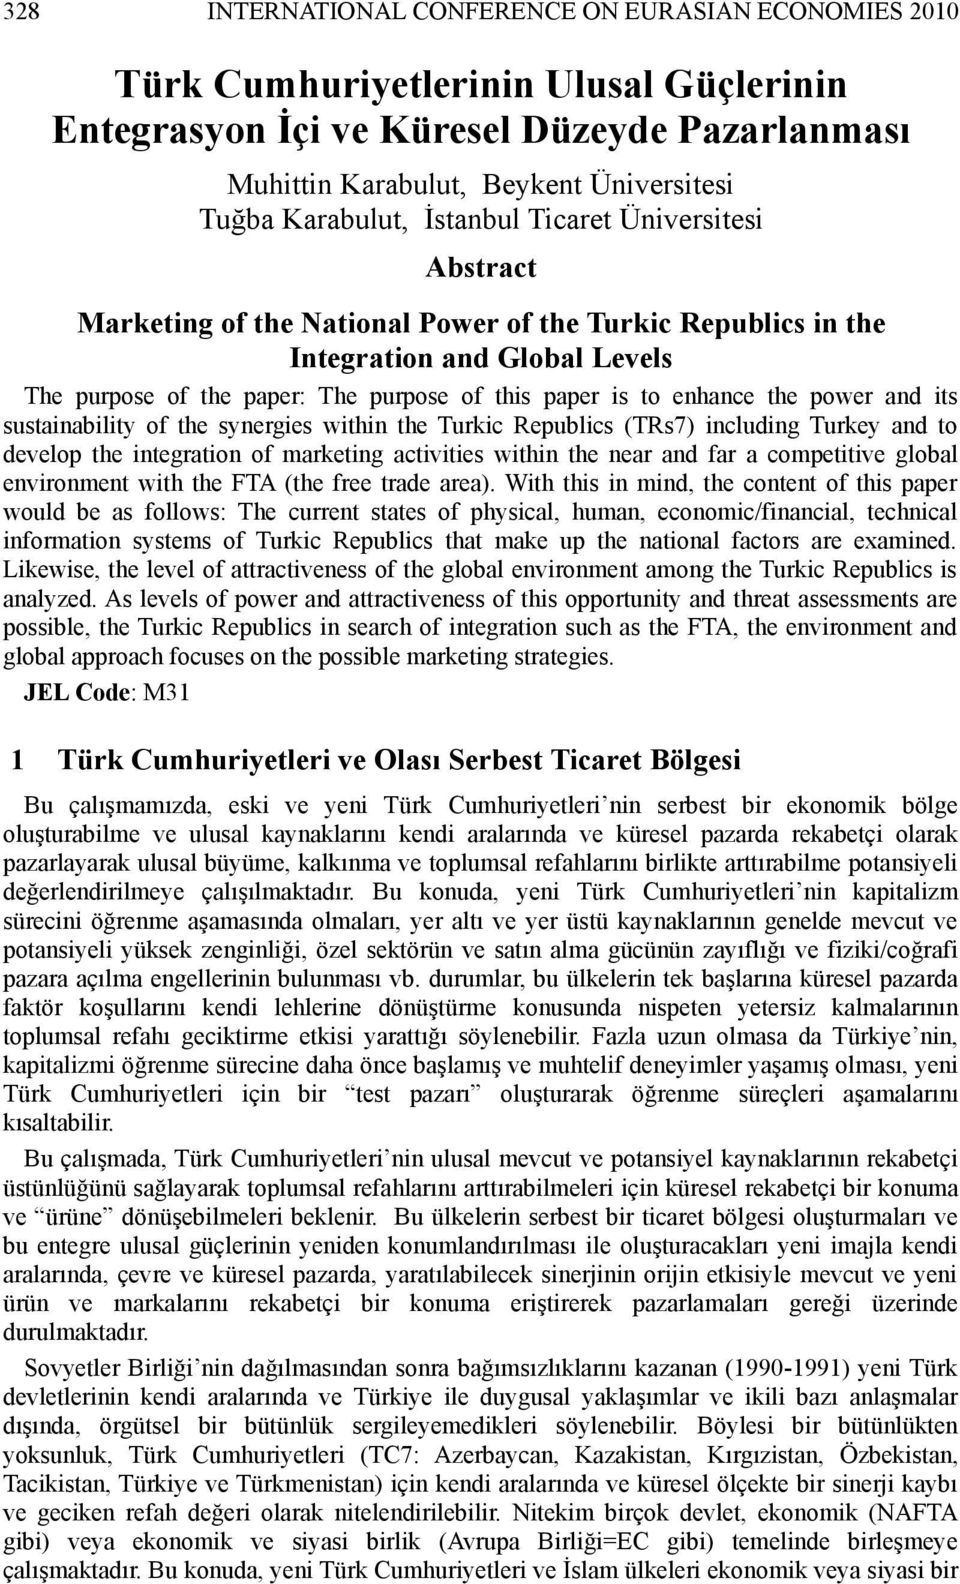 to enhance the power and its sustainability of the synergies within the Turkic Republics (TRs7) including Turkey and to develop the integration of marketing activities within the near and far a